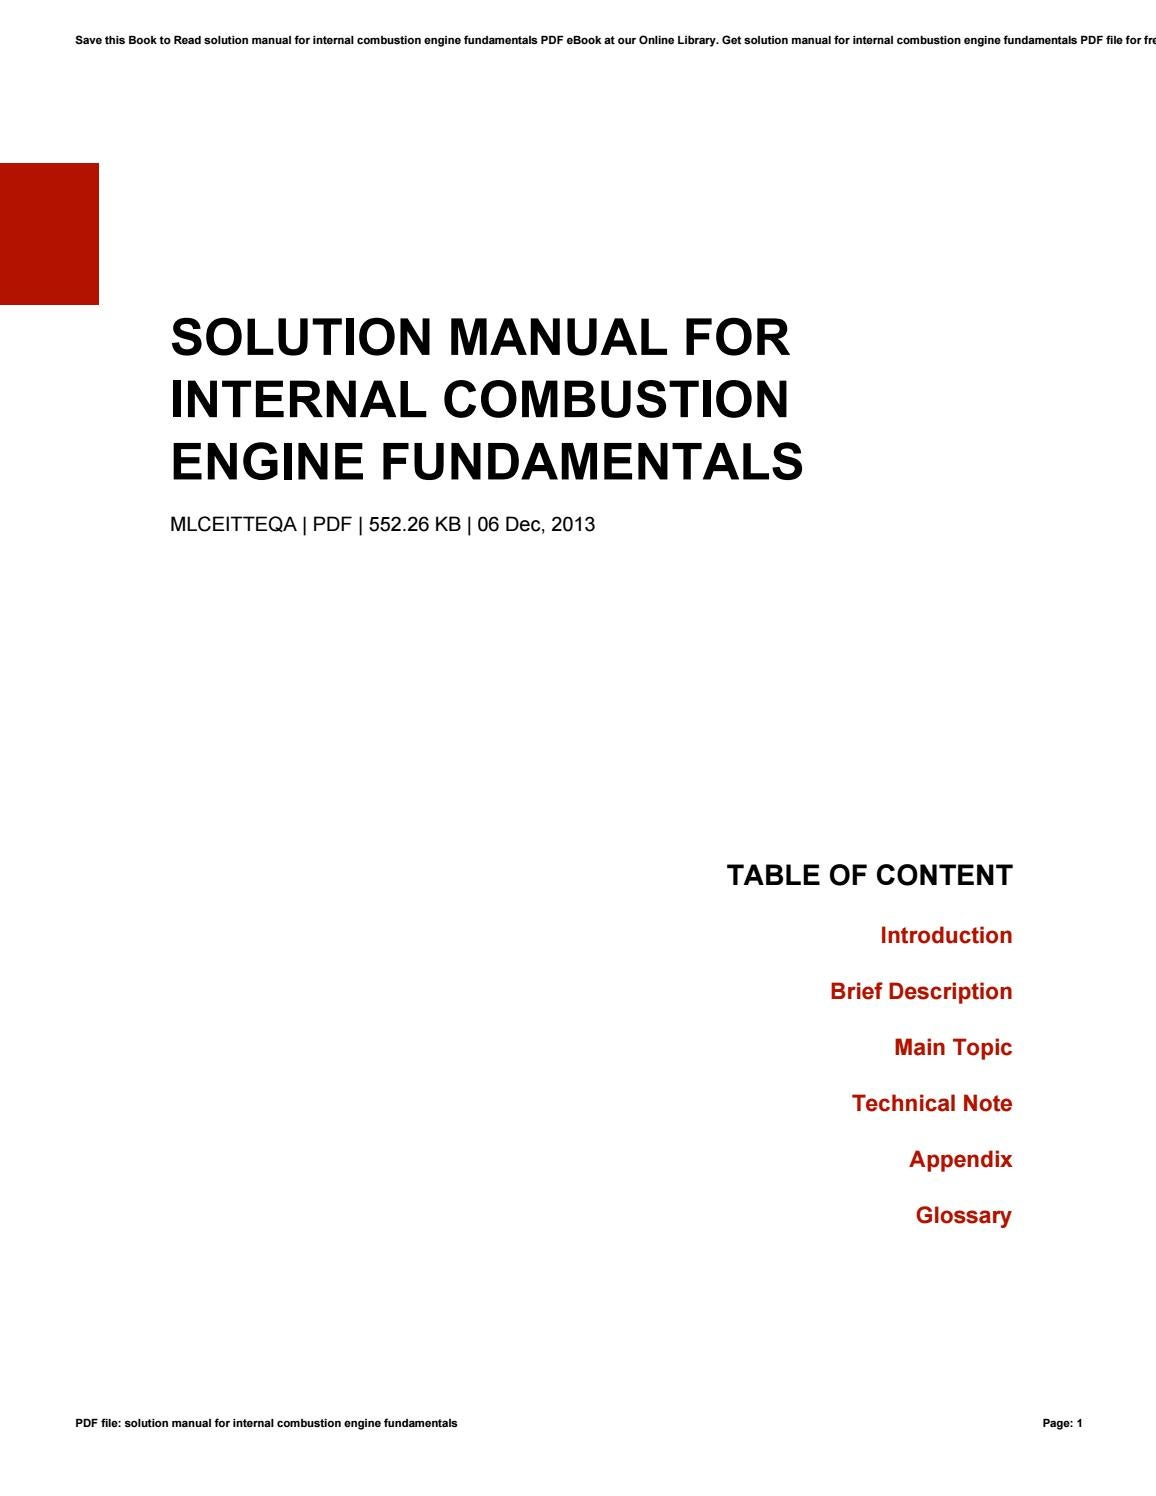 Solution manual for internal combustion engine